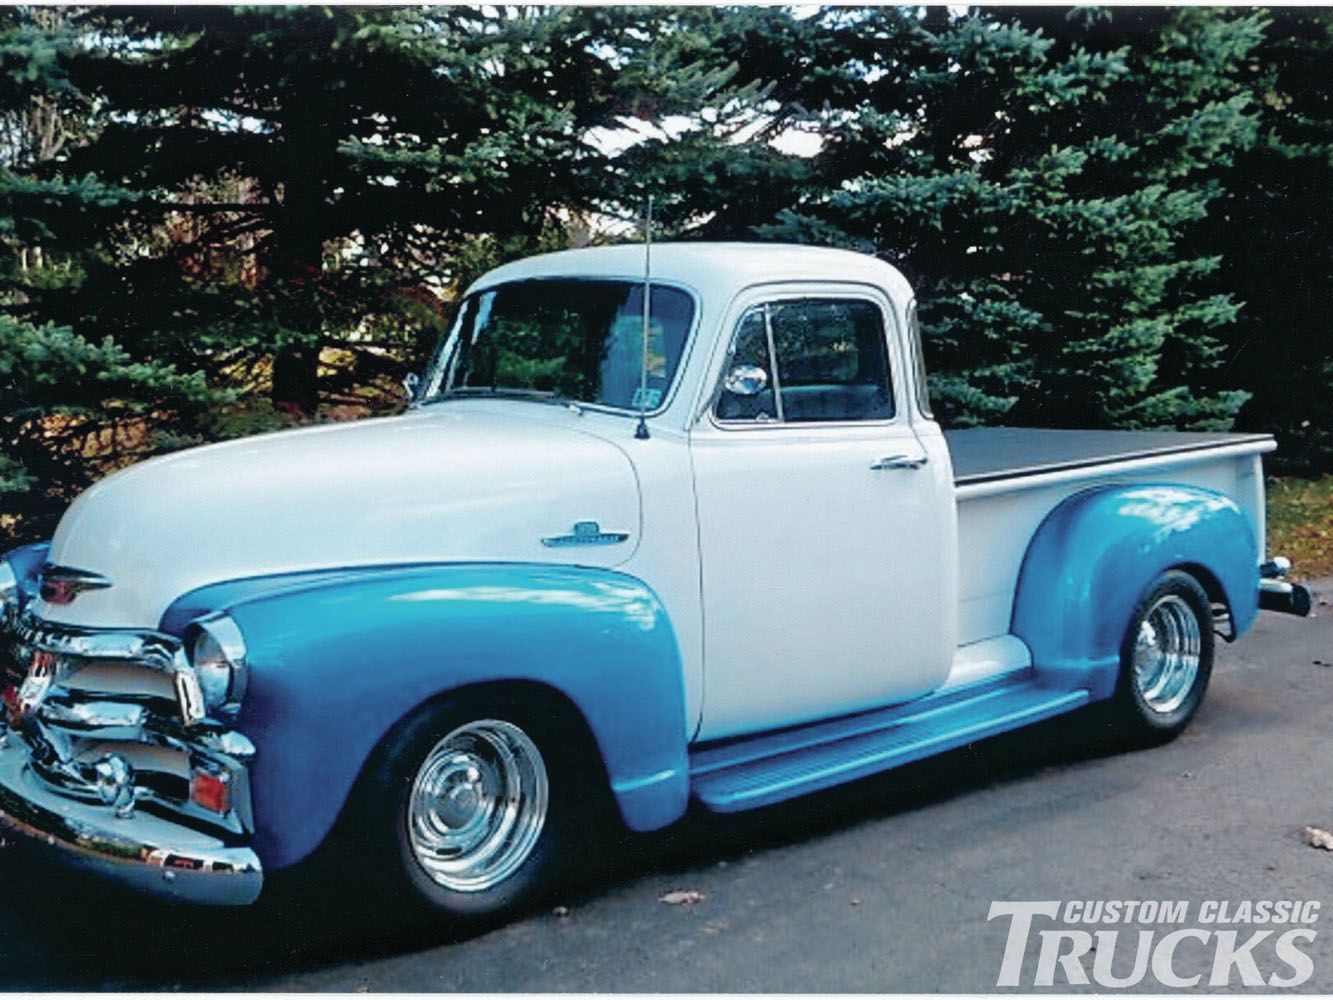 1955 First Series Chevy Gmc Pickup Truck Chevy Pickups Classic